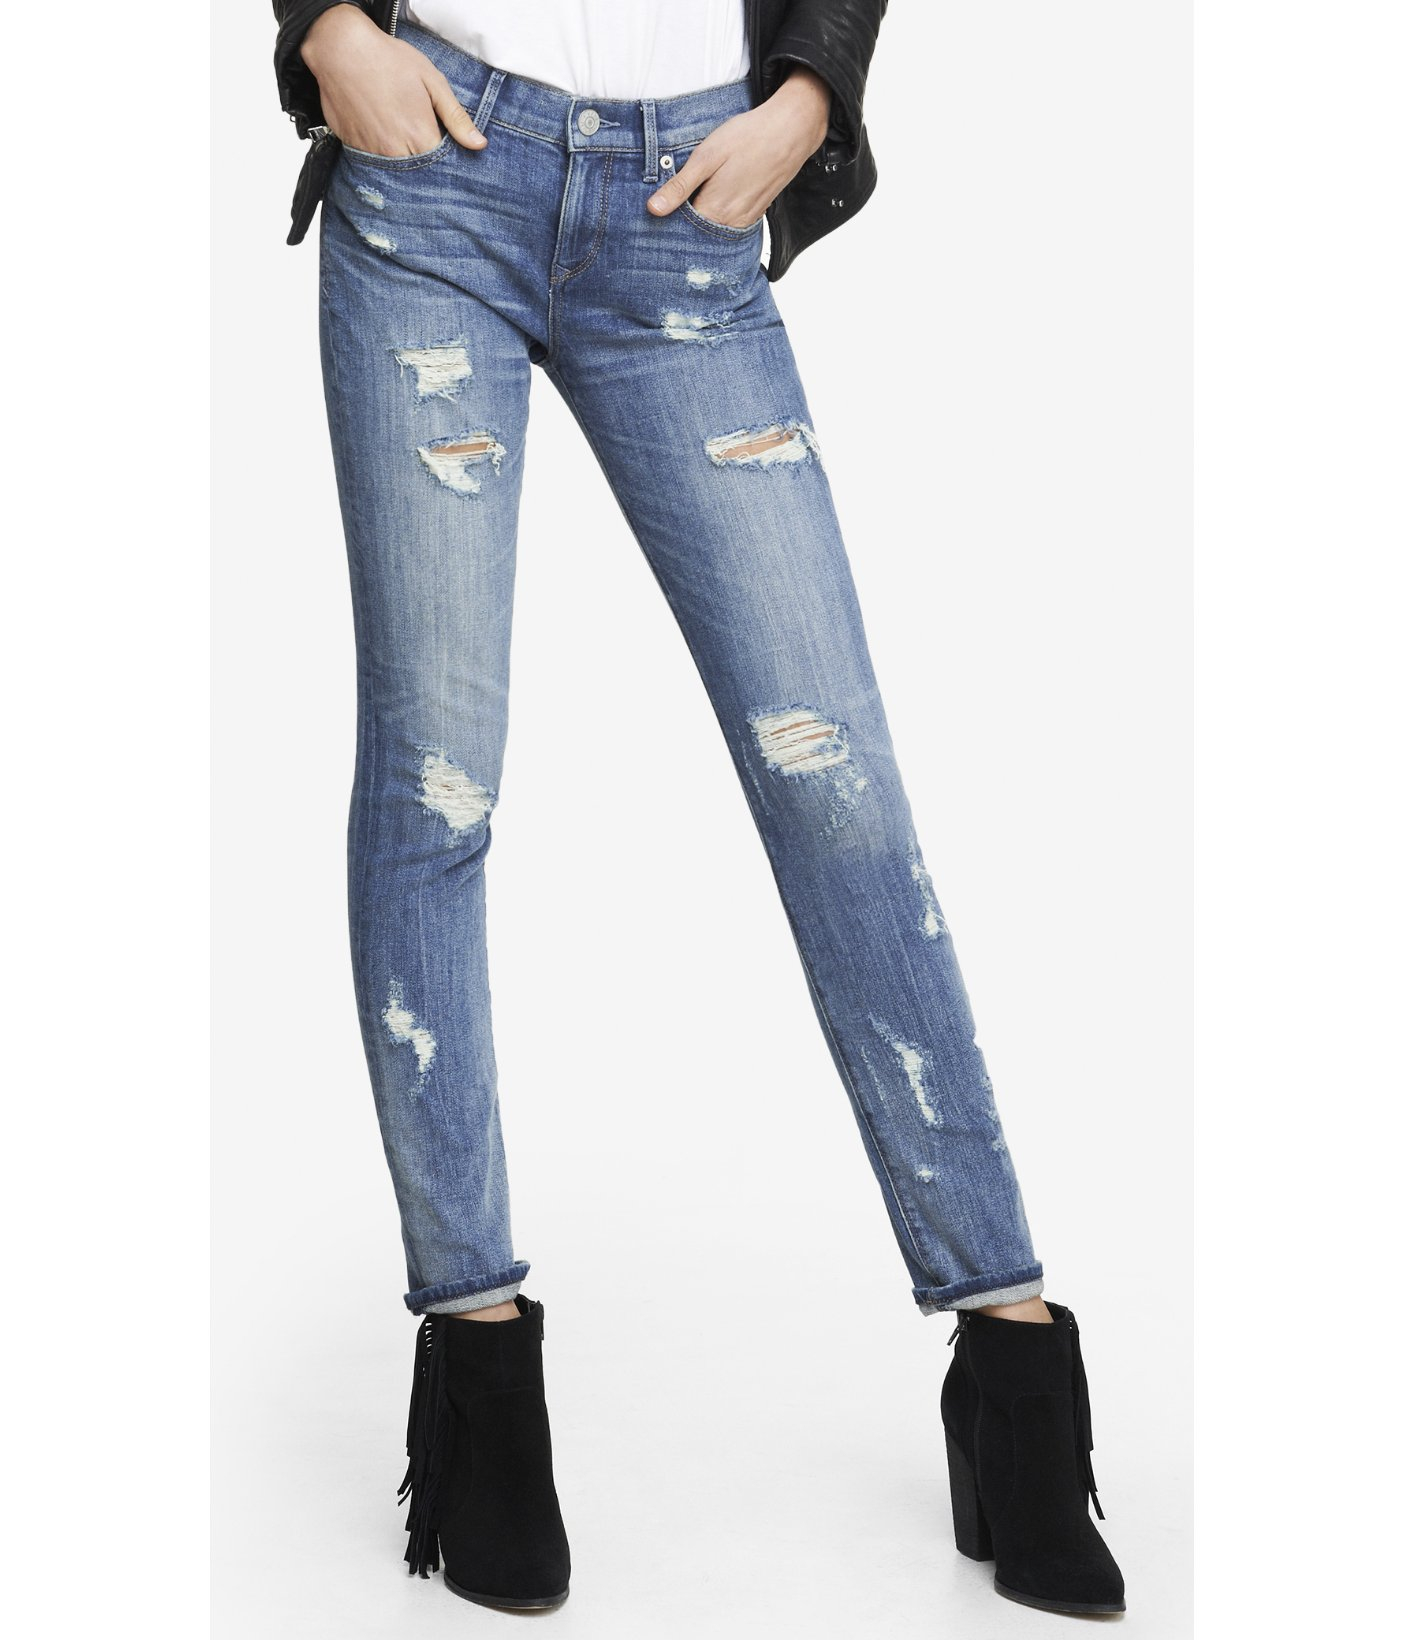 Discover mid rise jeans for women at ASOS. Shop a wide range of mid rise jeans, from skinny to slim, black to blue wash and from plain to printed jeans.